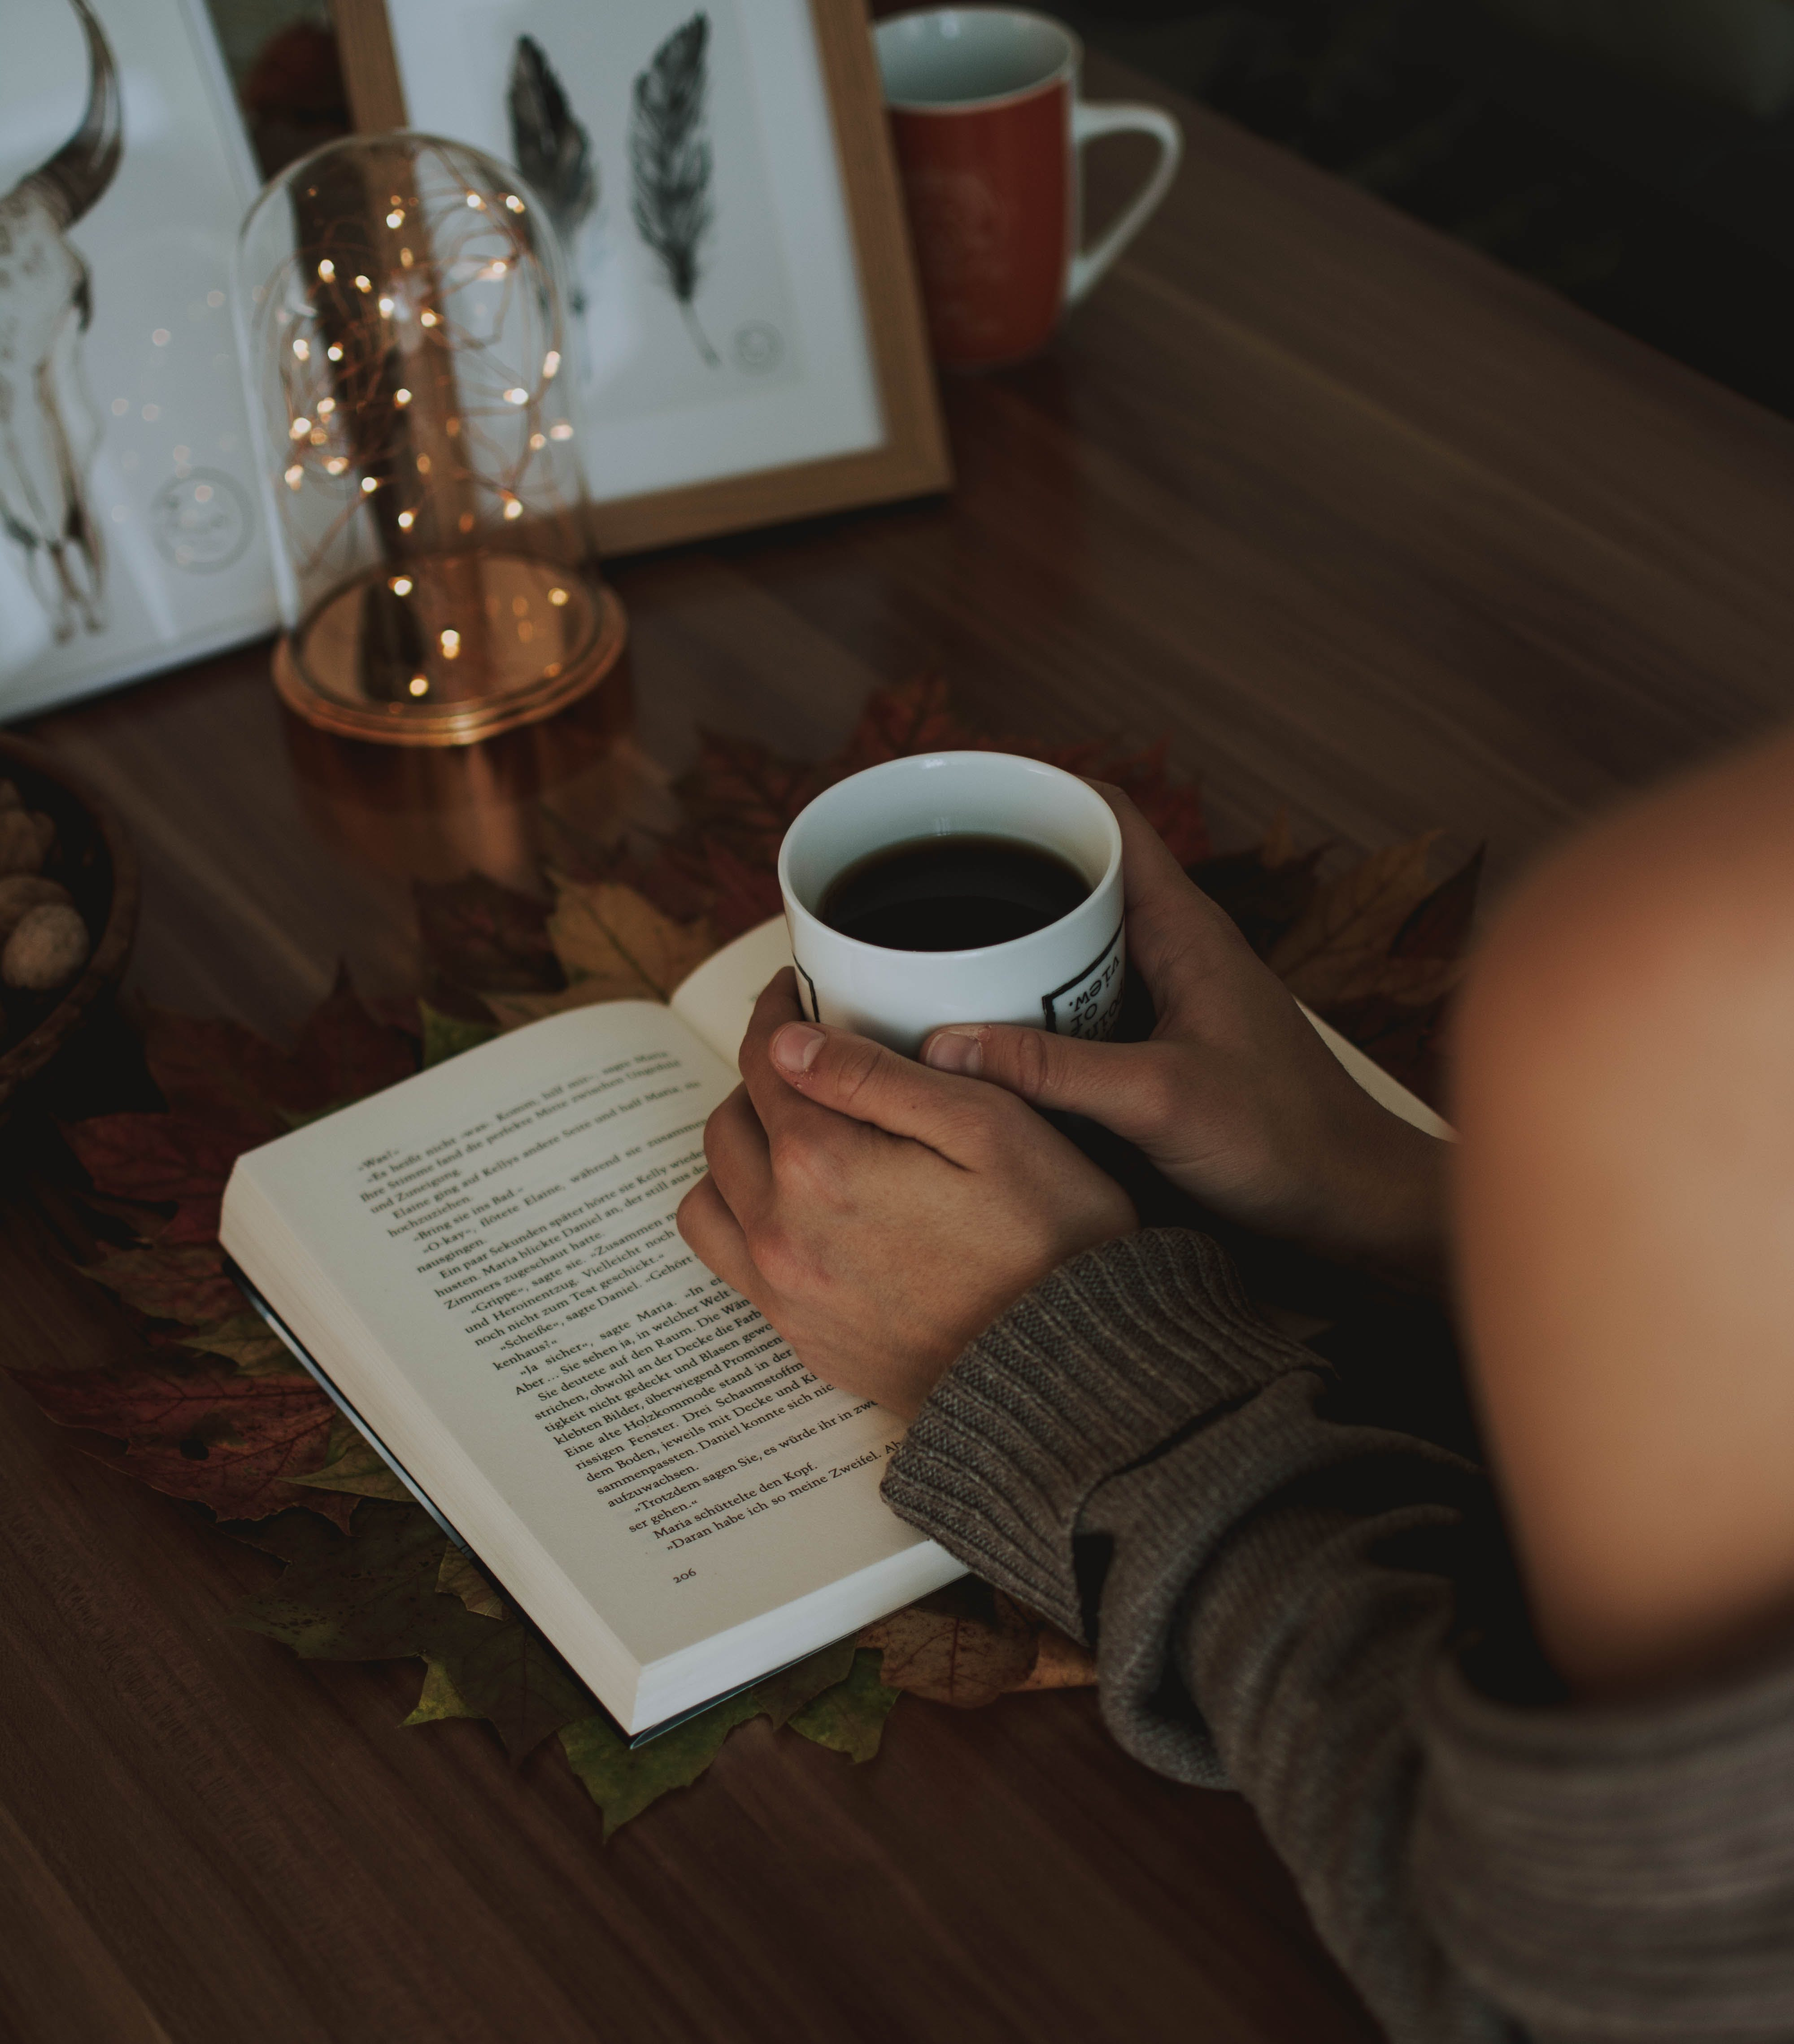 Girl Holding Mug of Coffee Above Opened Book on Brown Wooden Table